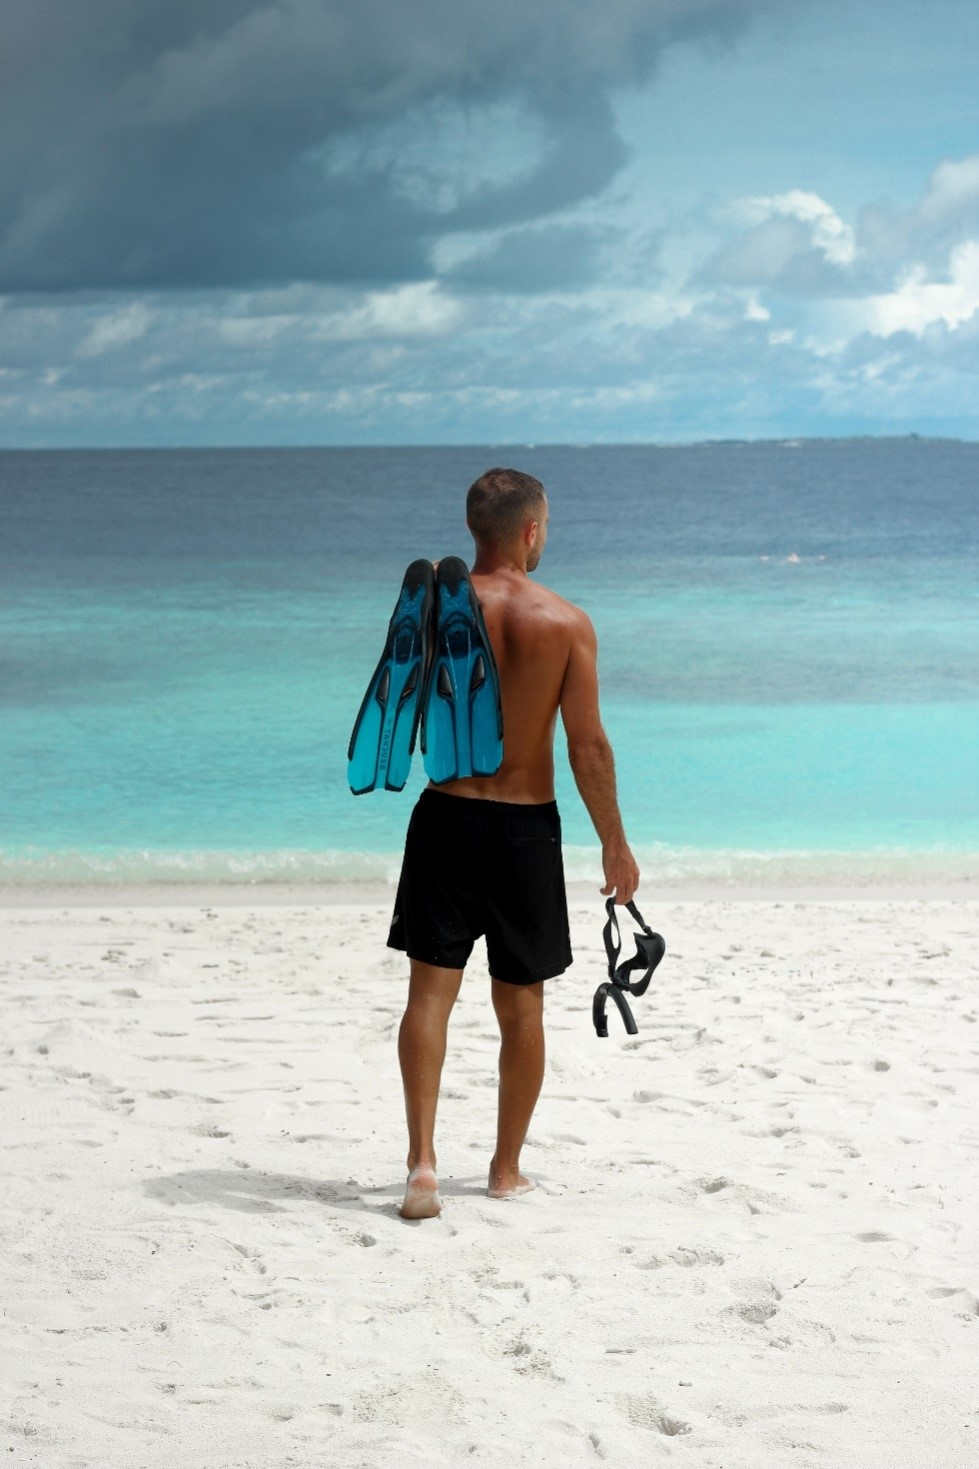 A person wearing black apparel shorts on the beach